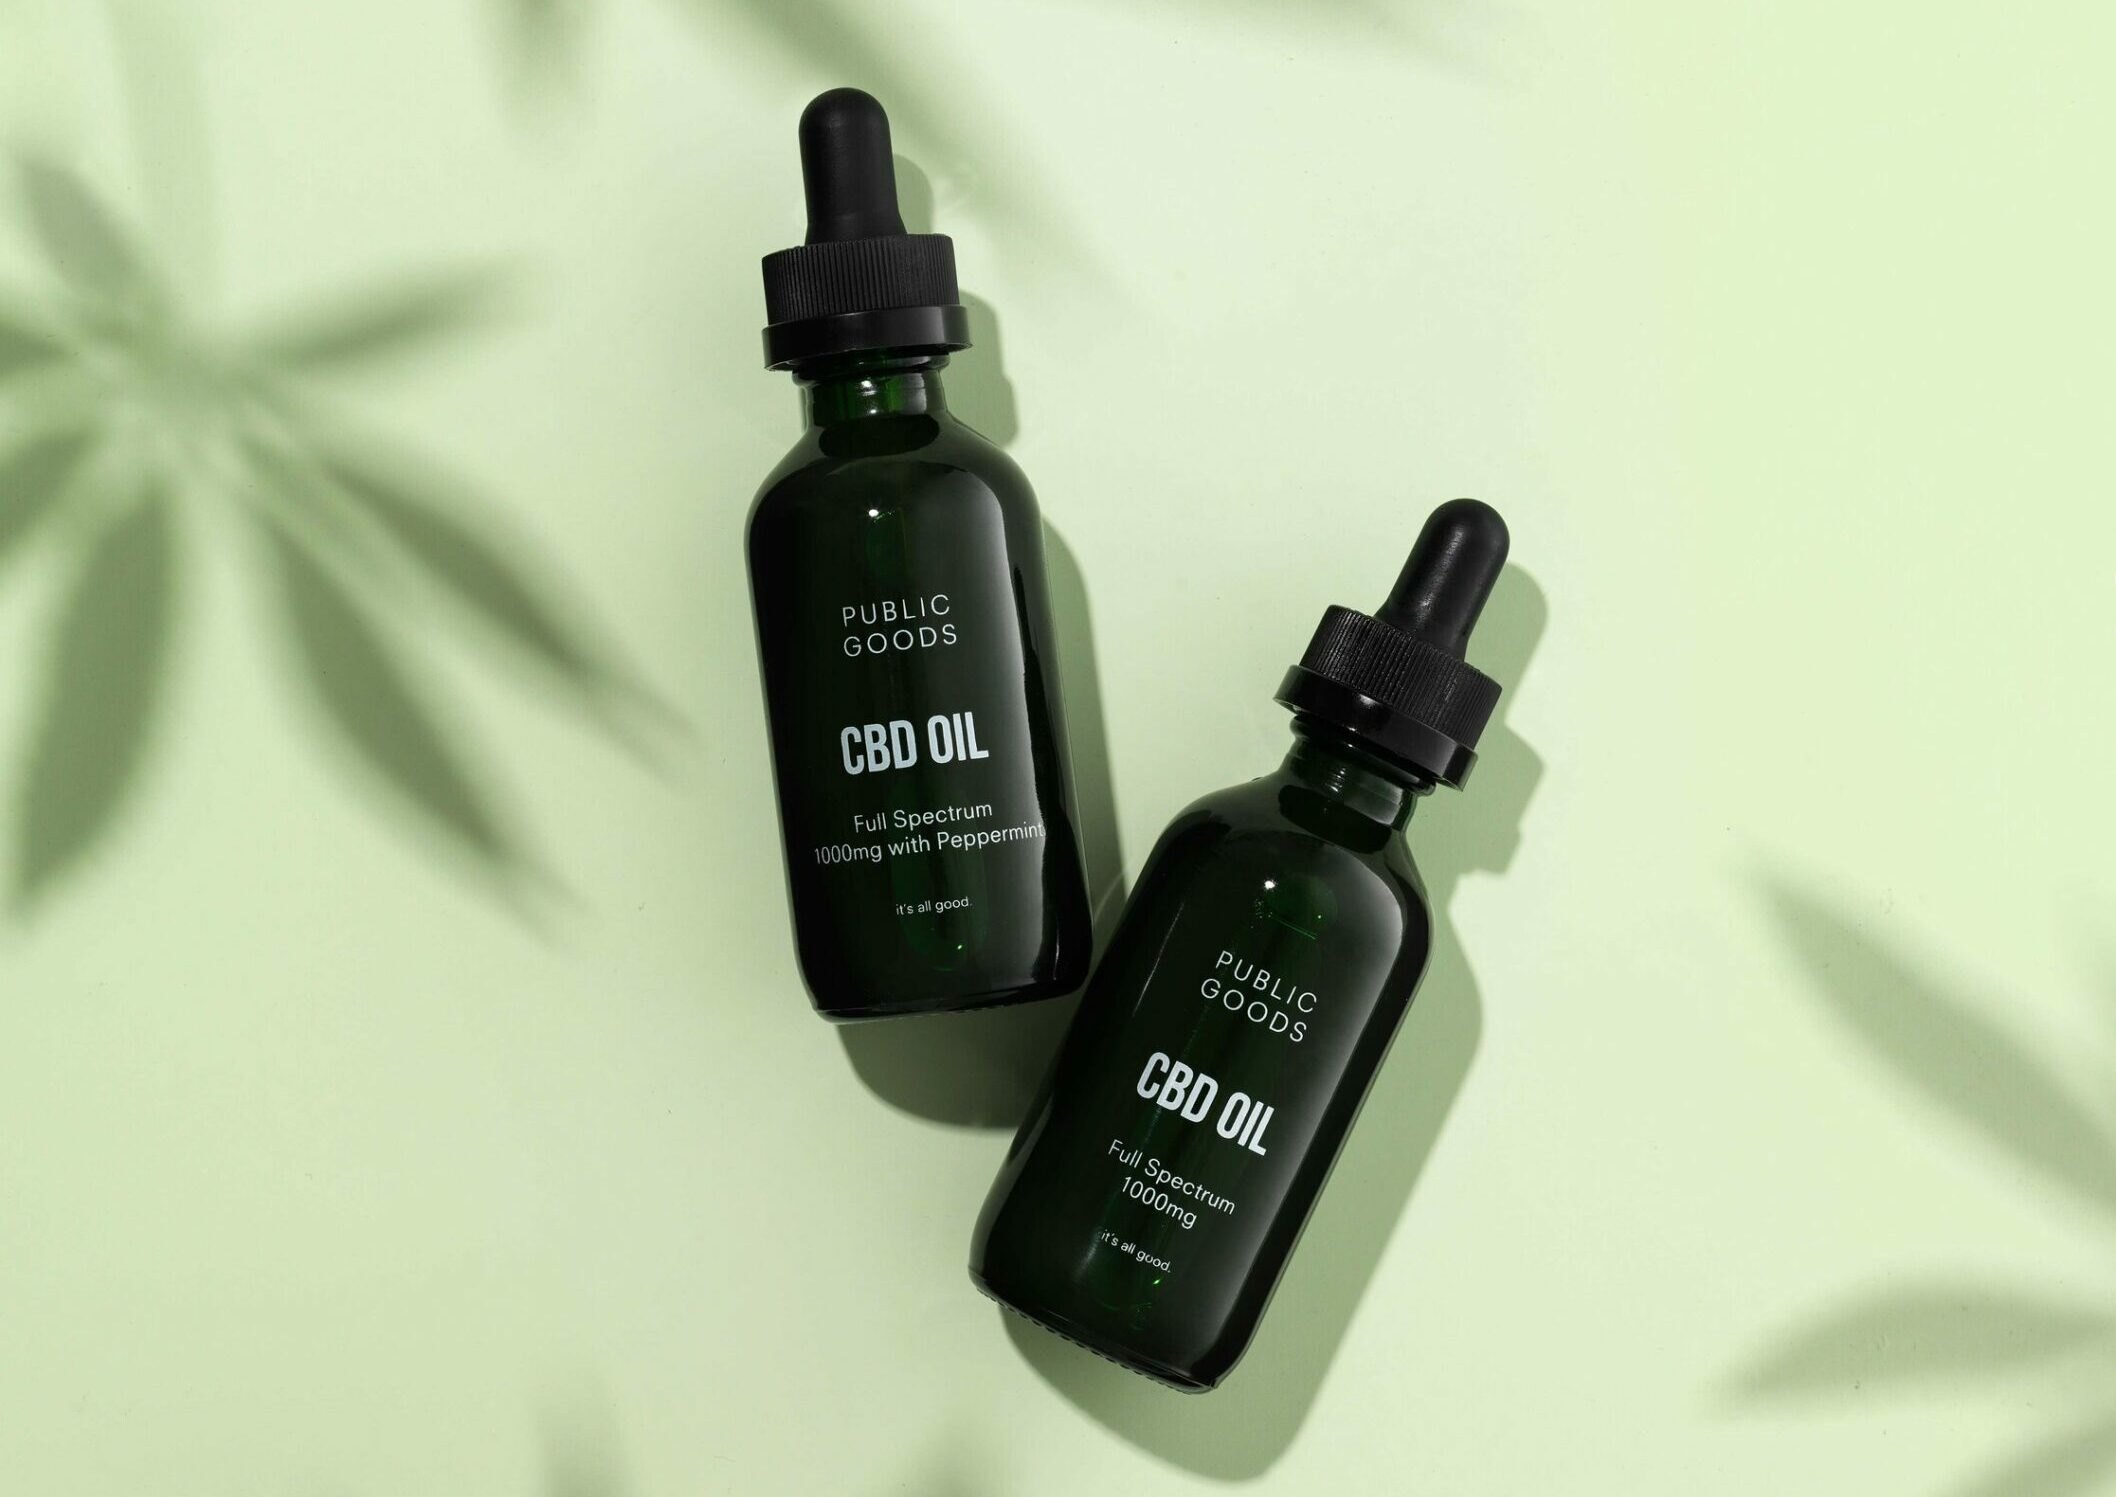 An Inside Look at Public Goods' CBD Products